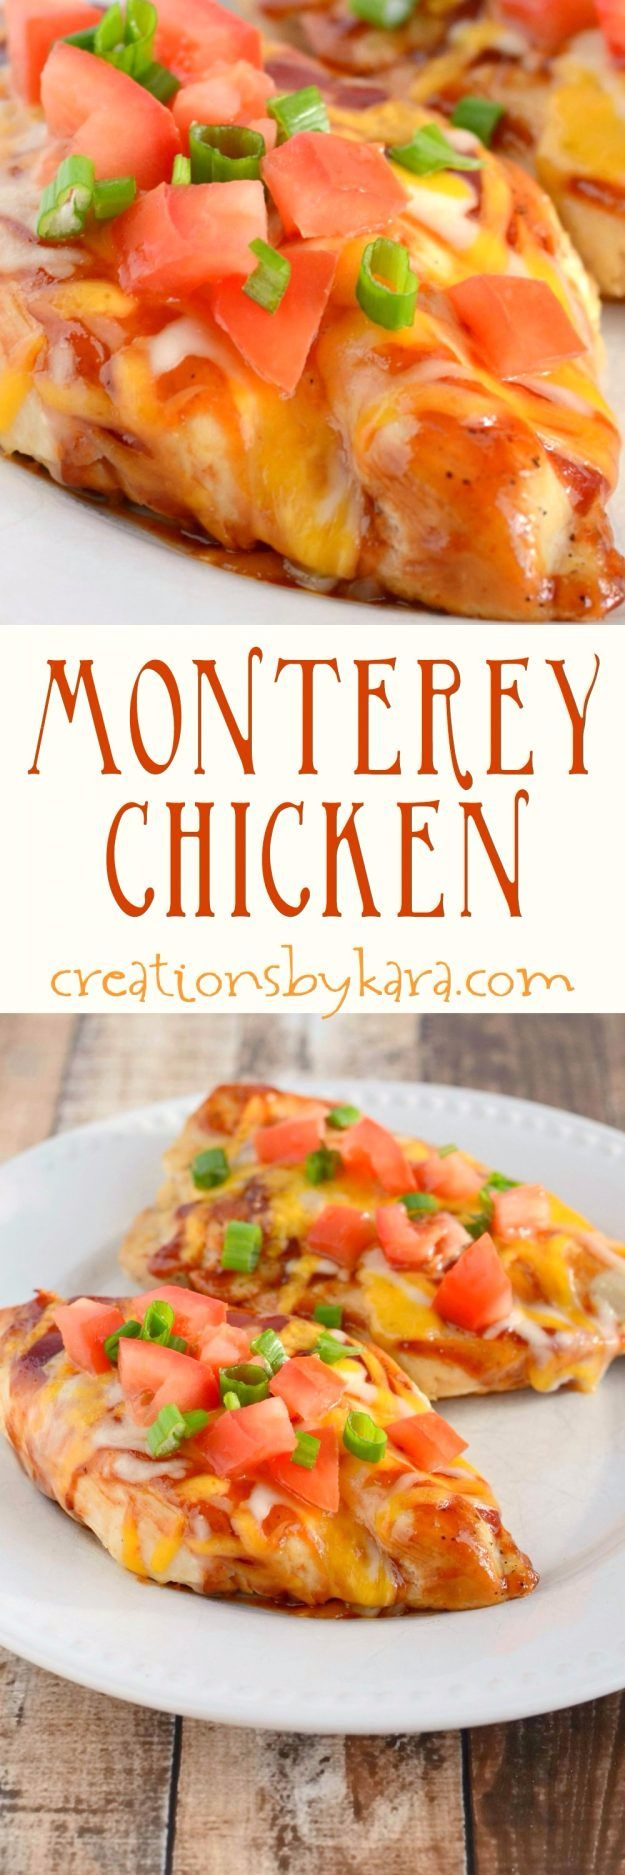 50 More Best Copycat Recipes From Top Restaurants - Monterey Chicken Chili's Knock Off Recipe - Awesome Recipe Knockoffs and Recipe Ideas from Chipotle Restaurant, Starbucks, Olive Garden, Cinabbon, Cracker Barrel, Taco Bell, Cheesecake Factory, KFC, Mc Donalds, Red Lobster, Panda Express http://diyjoy.com/best-copycat-restaurant-recipes